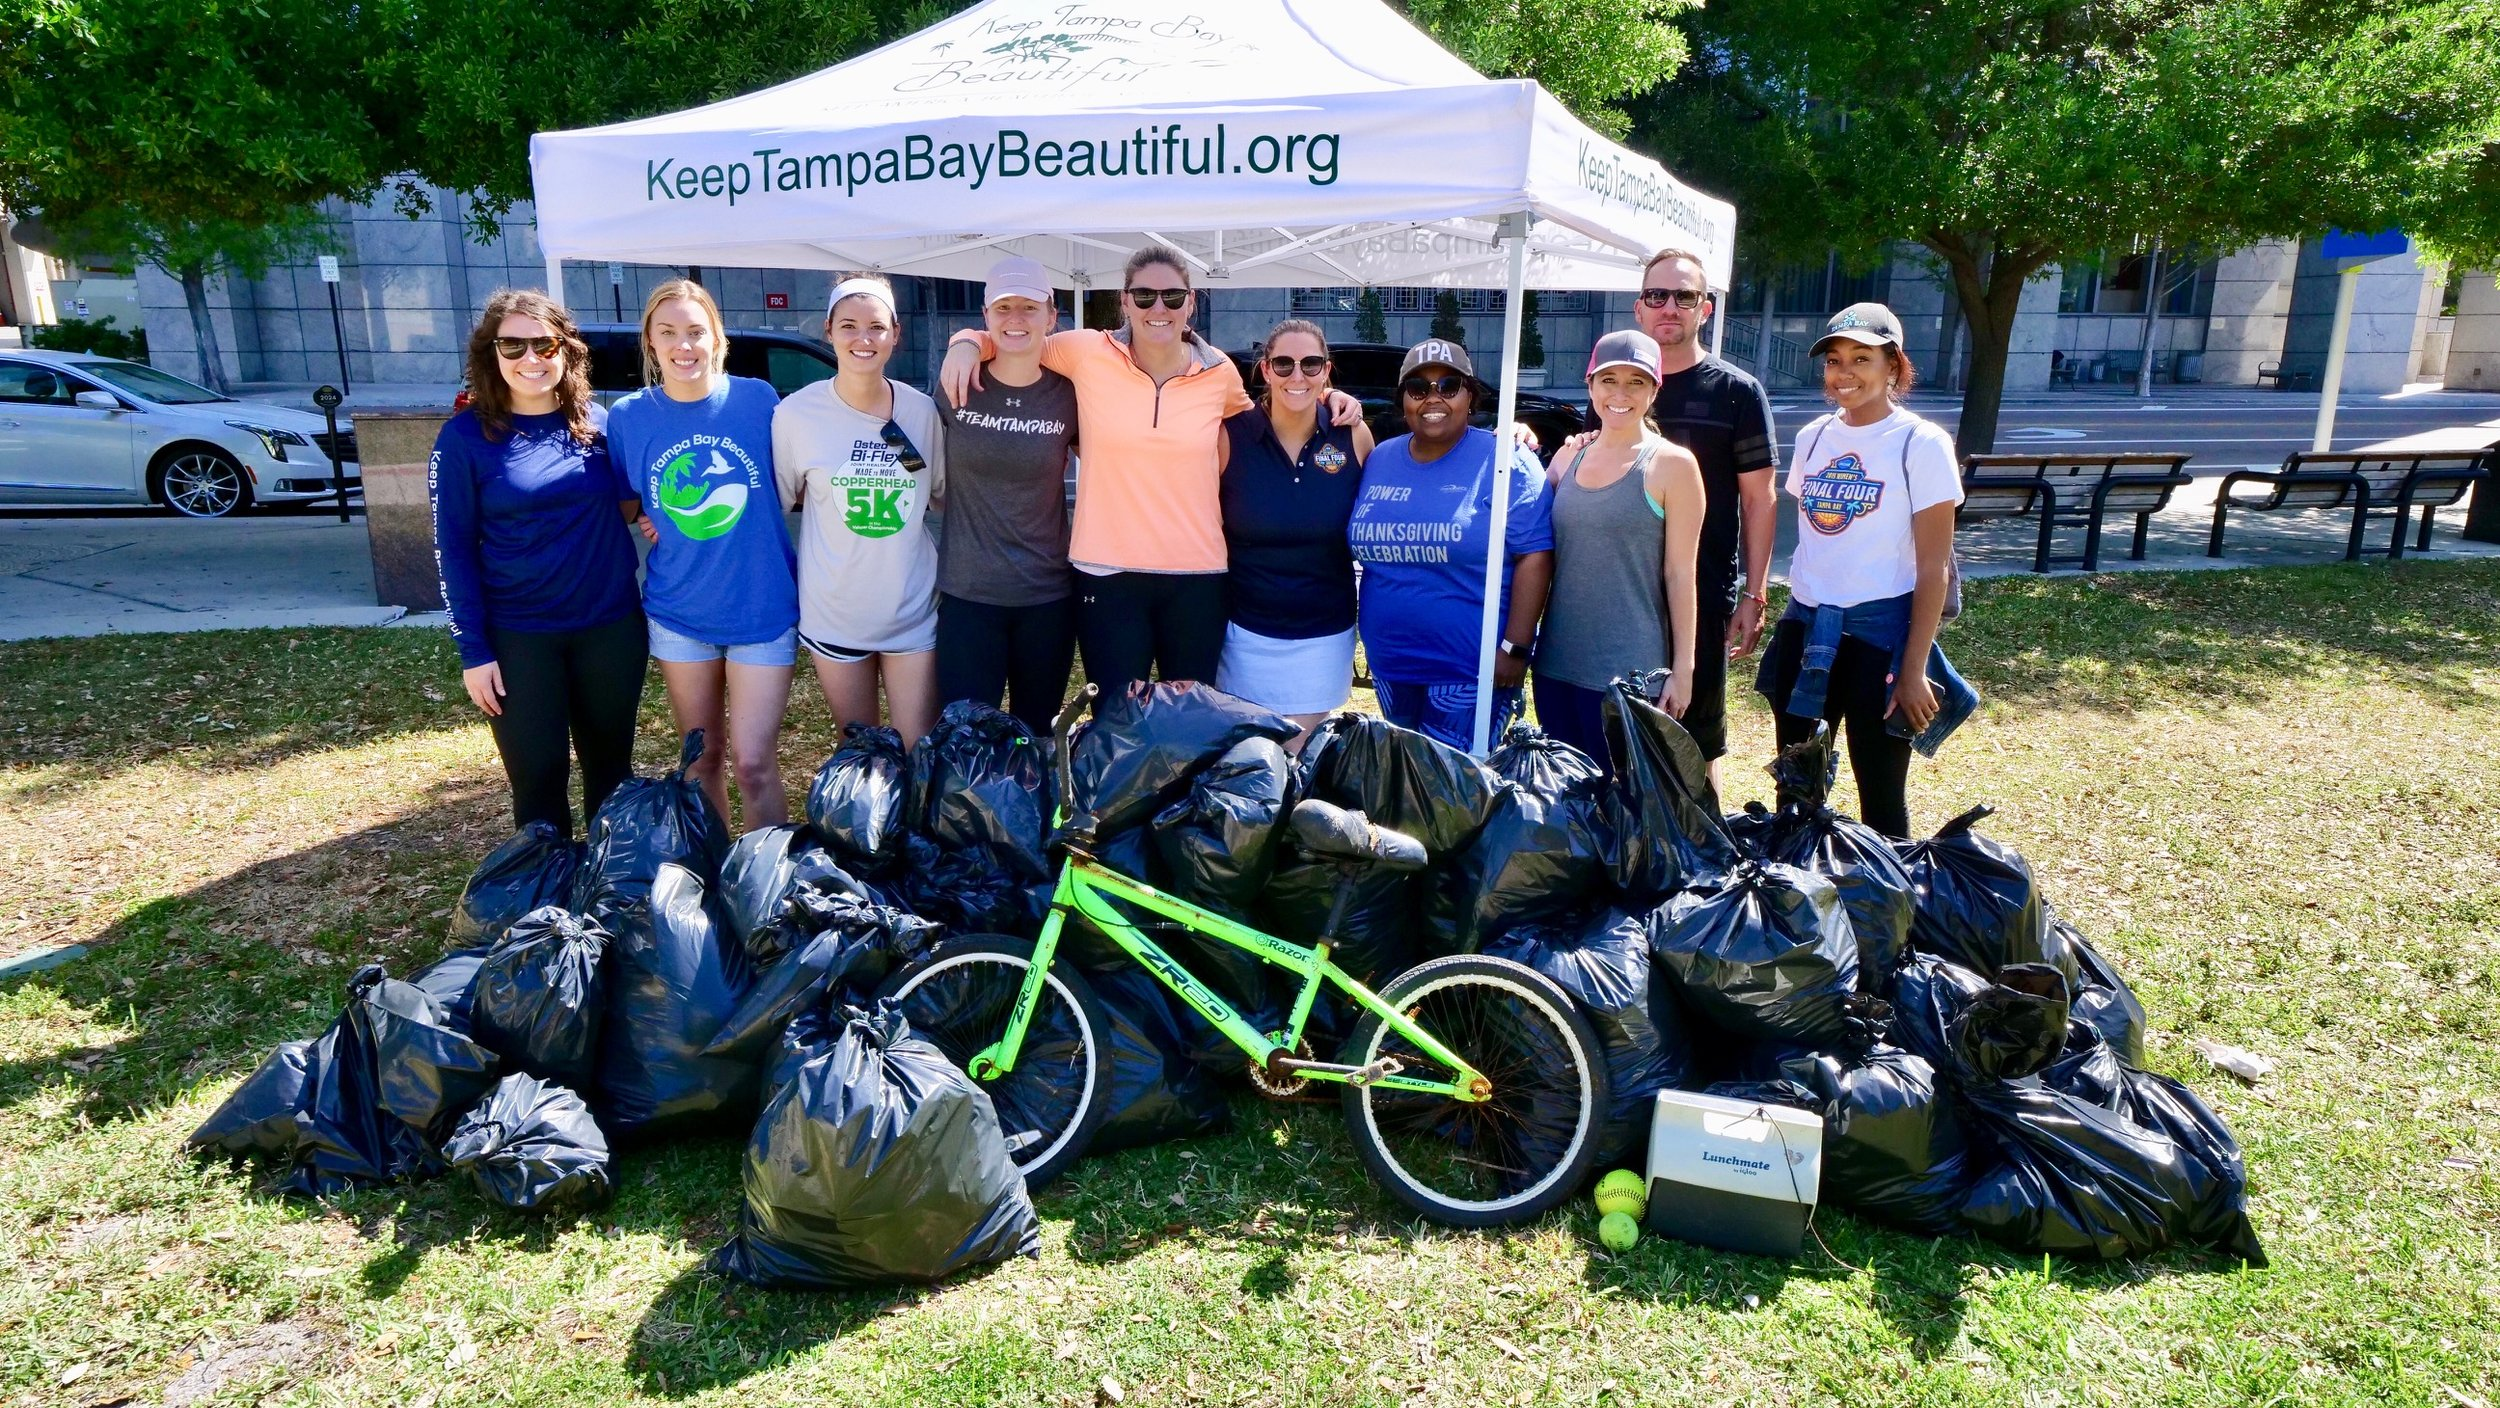 Local volunteers removed 40+ bags of trash from outdoor public spaces along the walking paths connecting the 2019 Women's Final Four Tourney Town fan festival with Amalie Arena the week before the tournament. (Photo: Tampa Bay Local Organizing Committee)